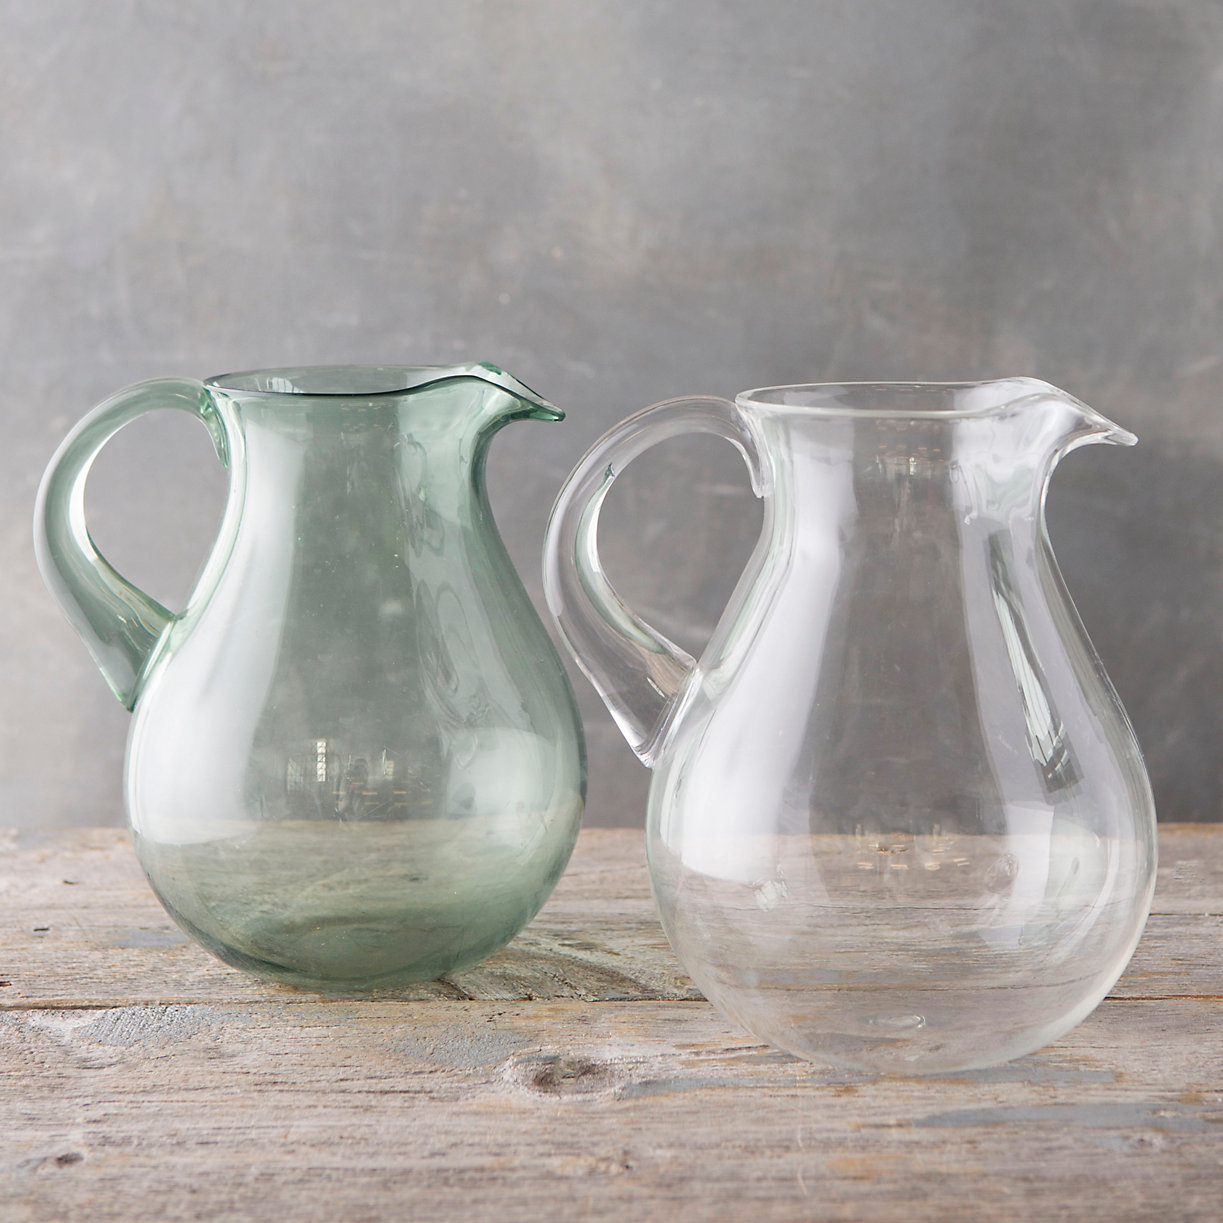 plastic pitchers for zero waste entertaining